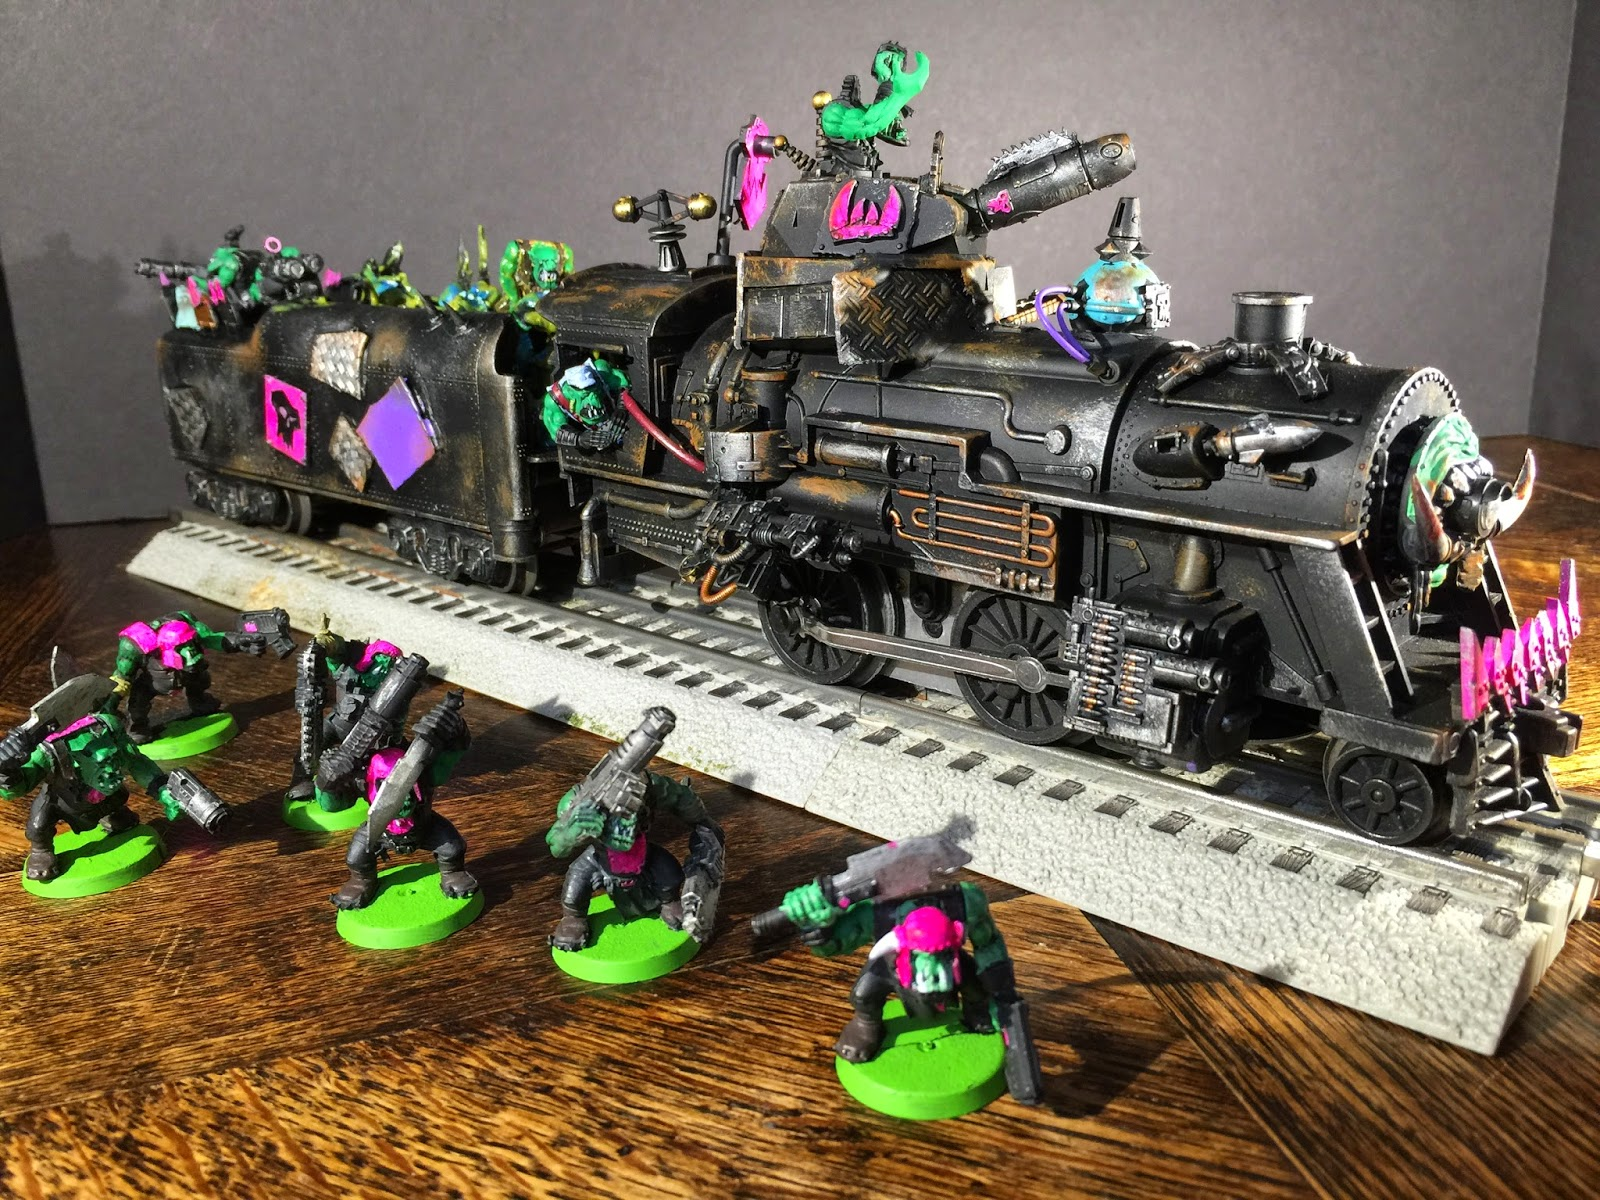 Pink Orks; Dakka Chugga; Ork Train; Ork Steam Train; Ork Locomotive; Battle Gaming One